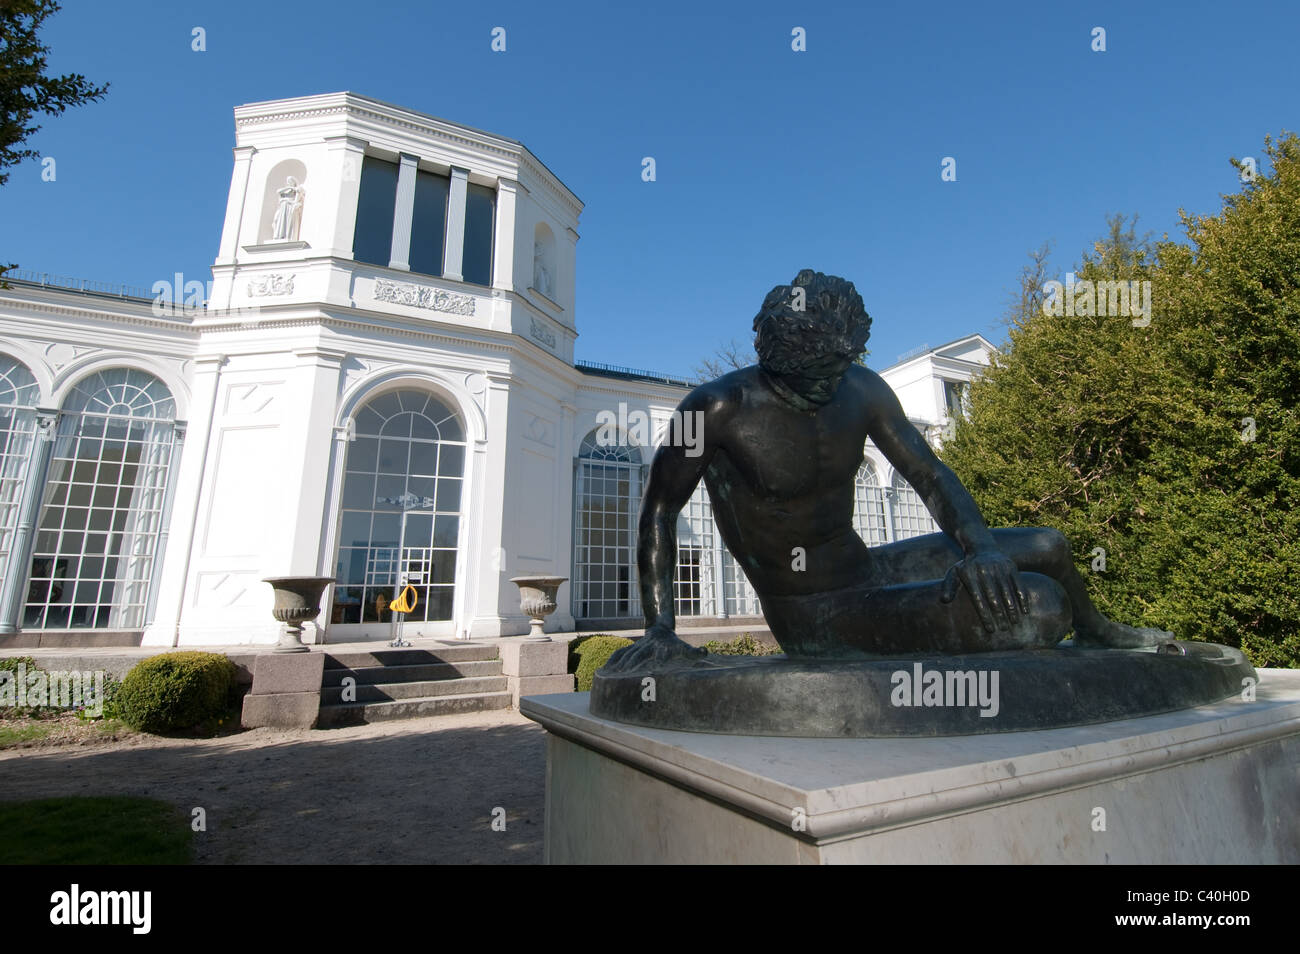 Sculpture of the Dying Gaul (replica) at the orangery in Putbus, Ruegen Island, Mecklenburg-Western Pomerania, Germany - Stock Image